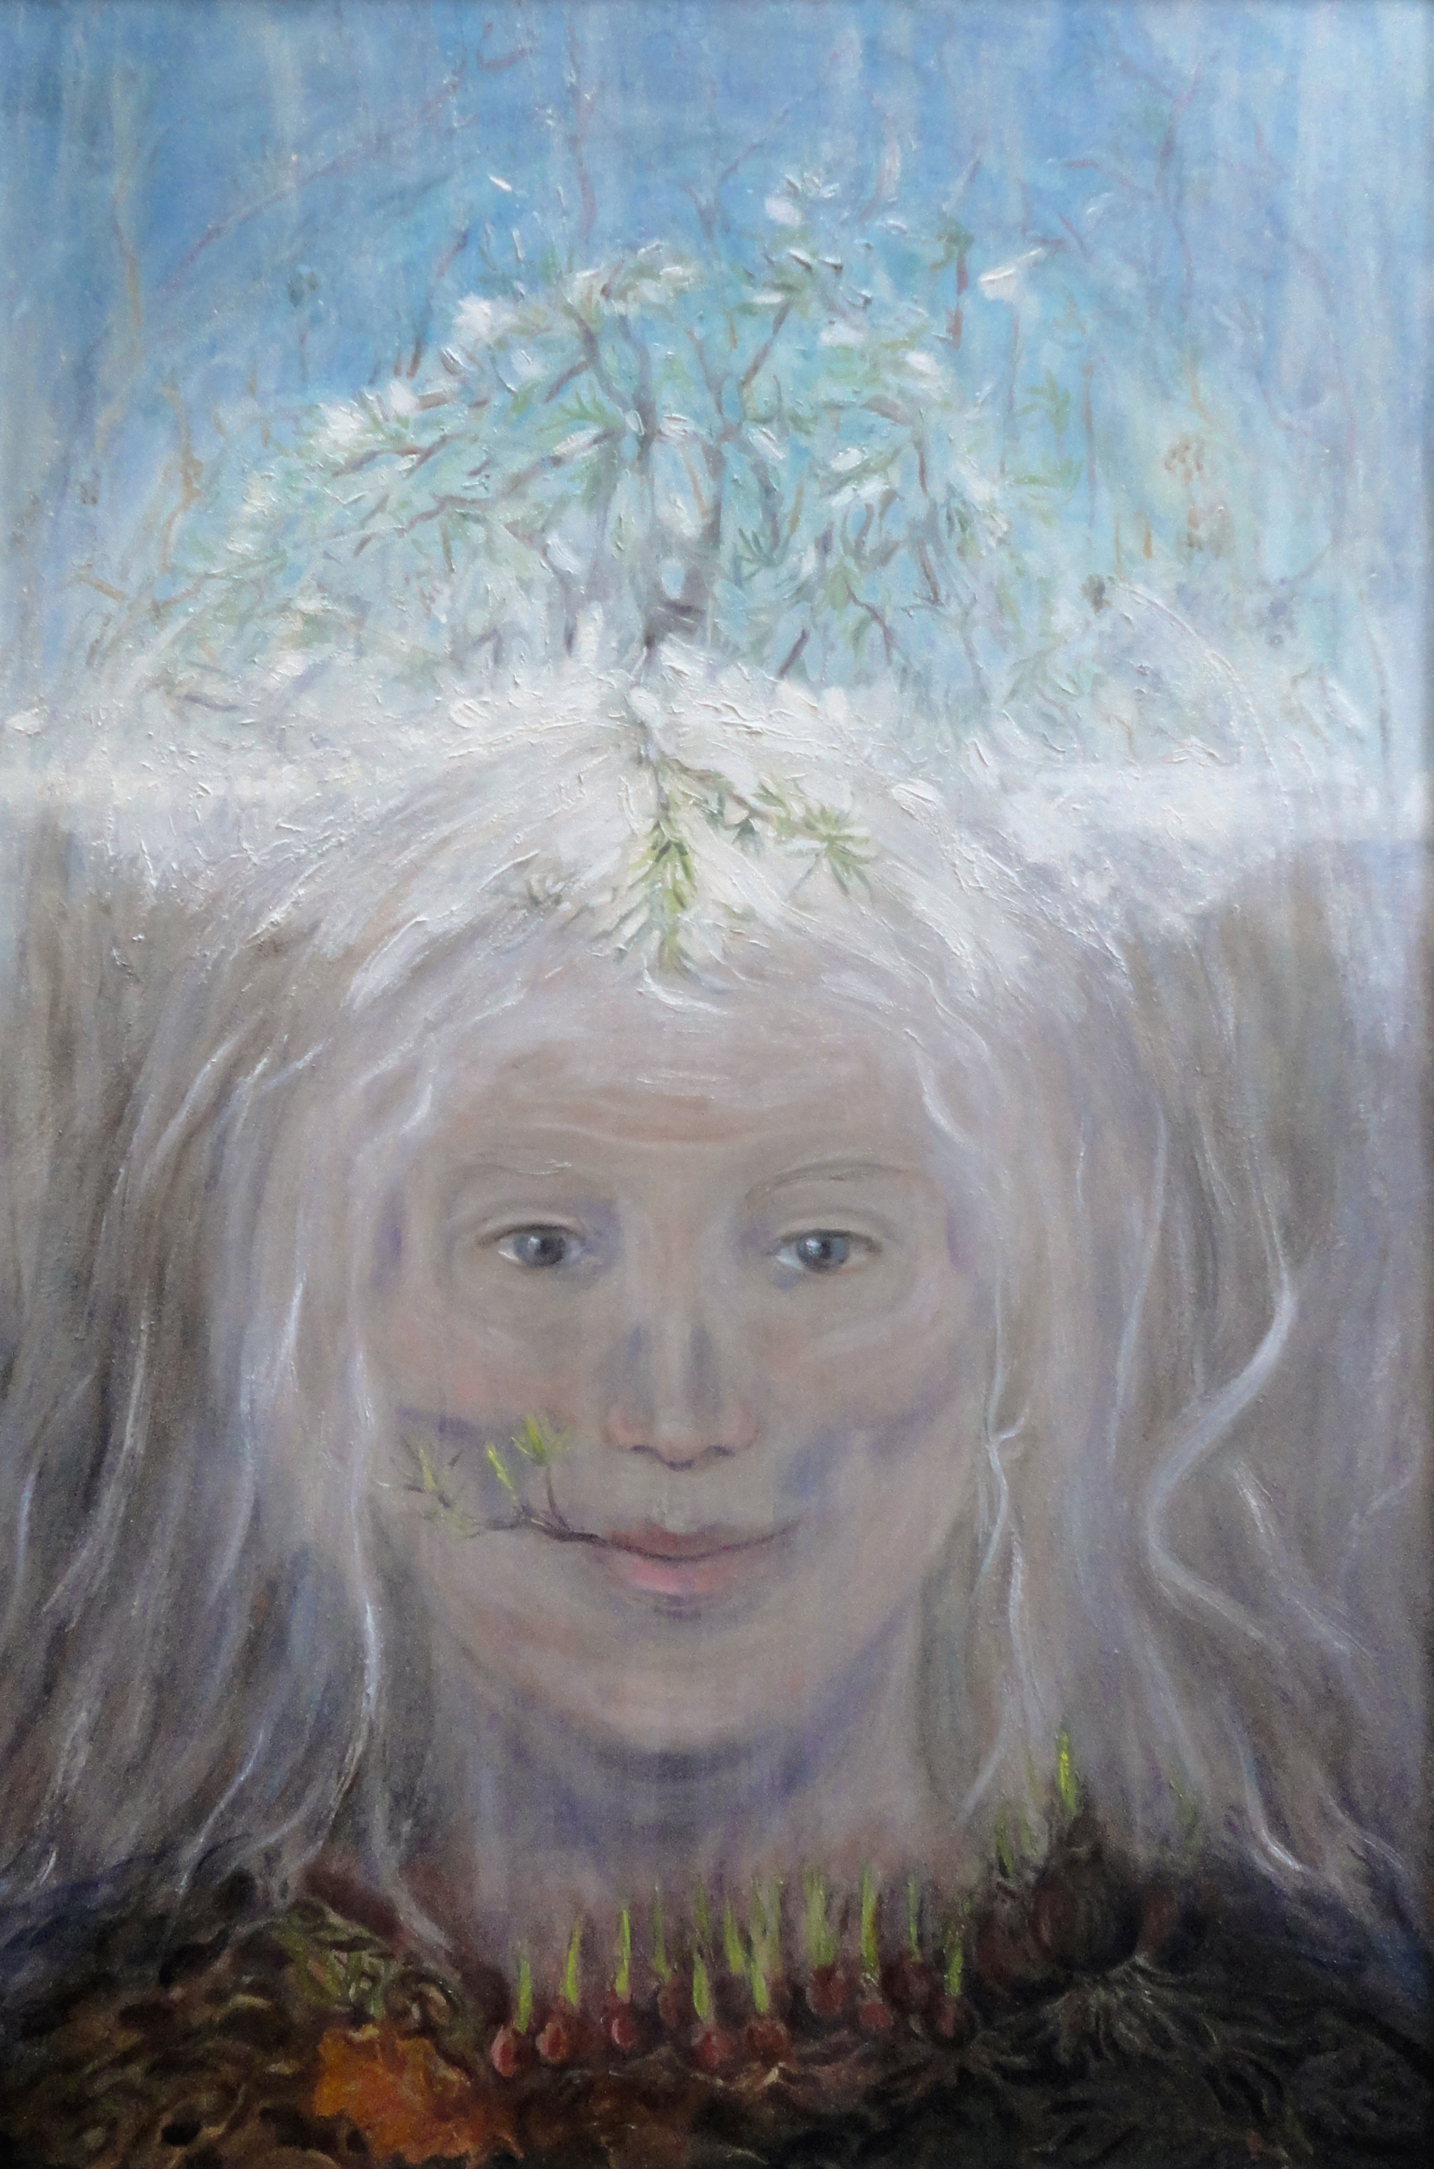 Earth Mother Winter